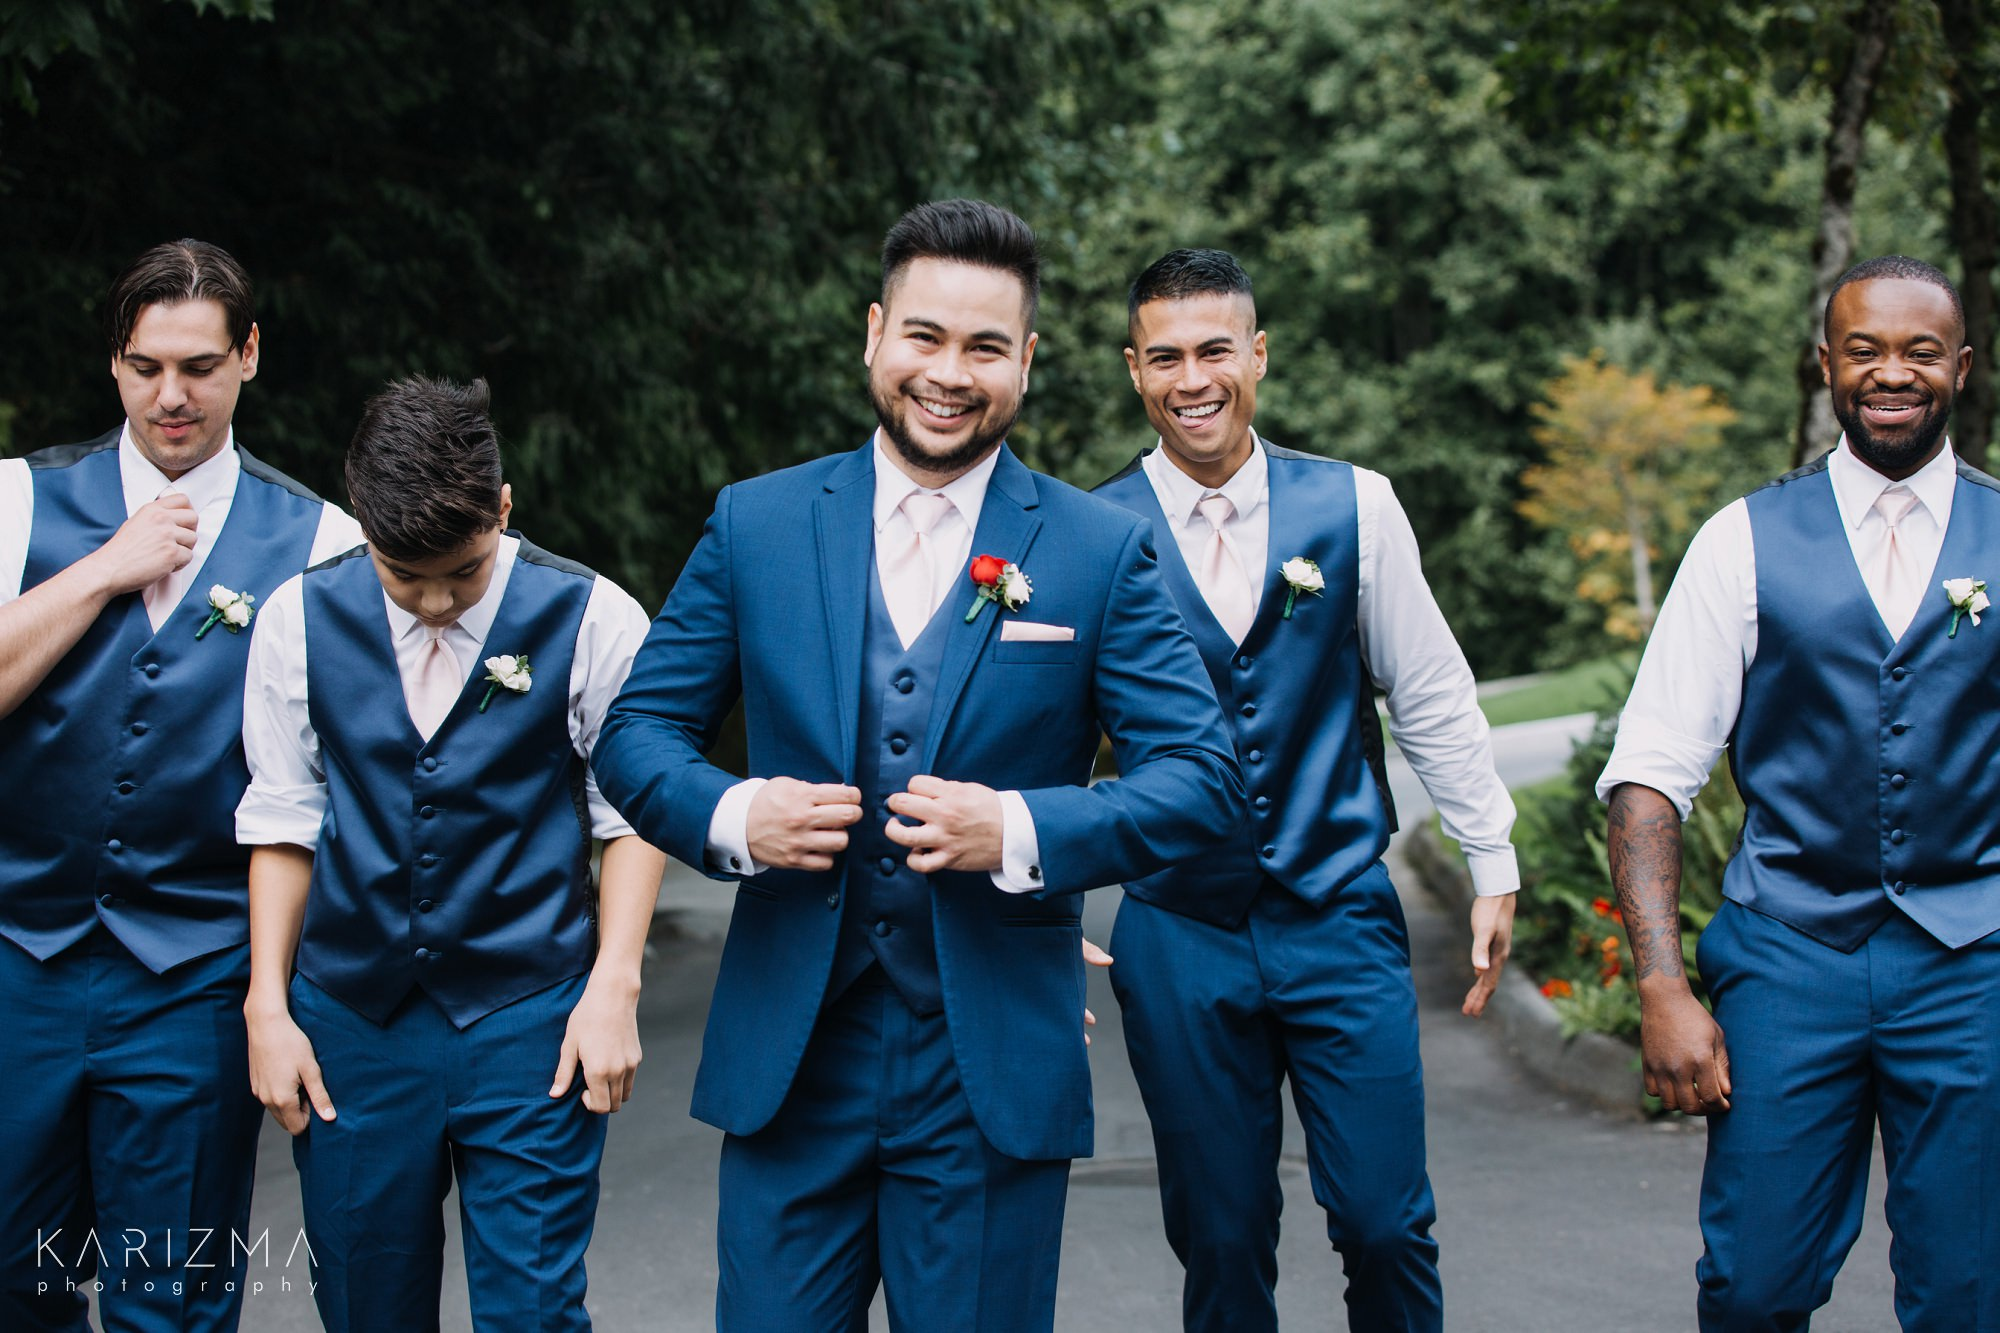 Furry Creek Golf Club Wedding groom and groomsmen